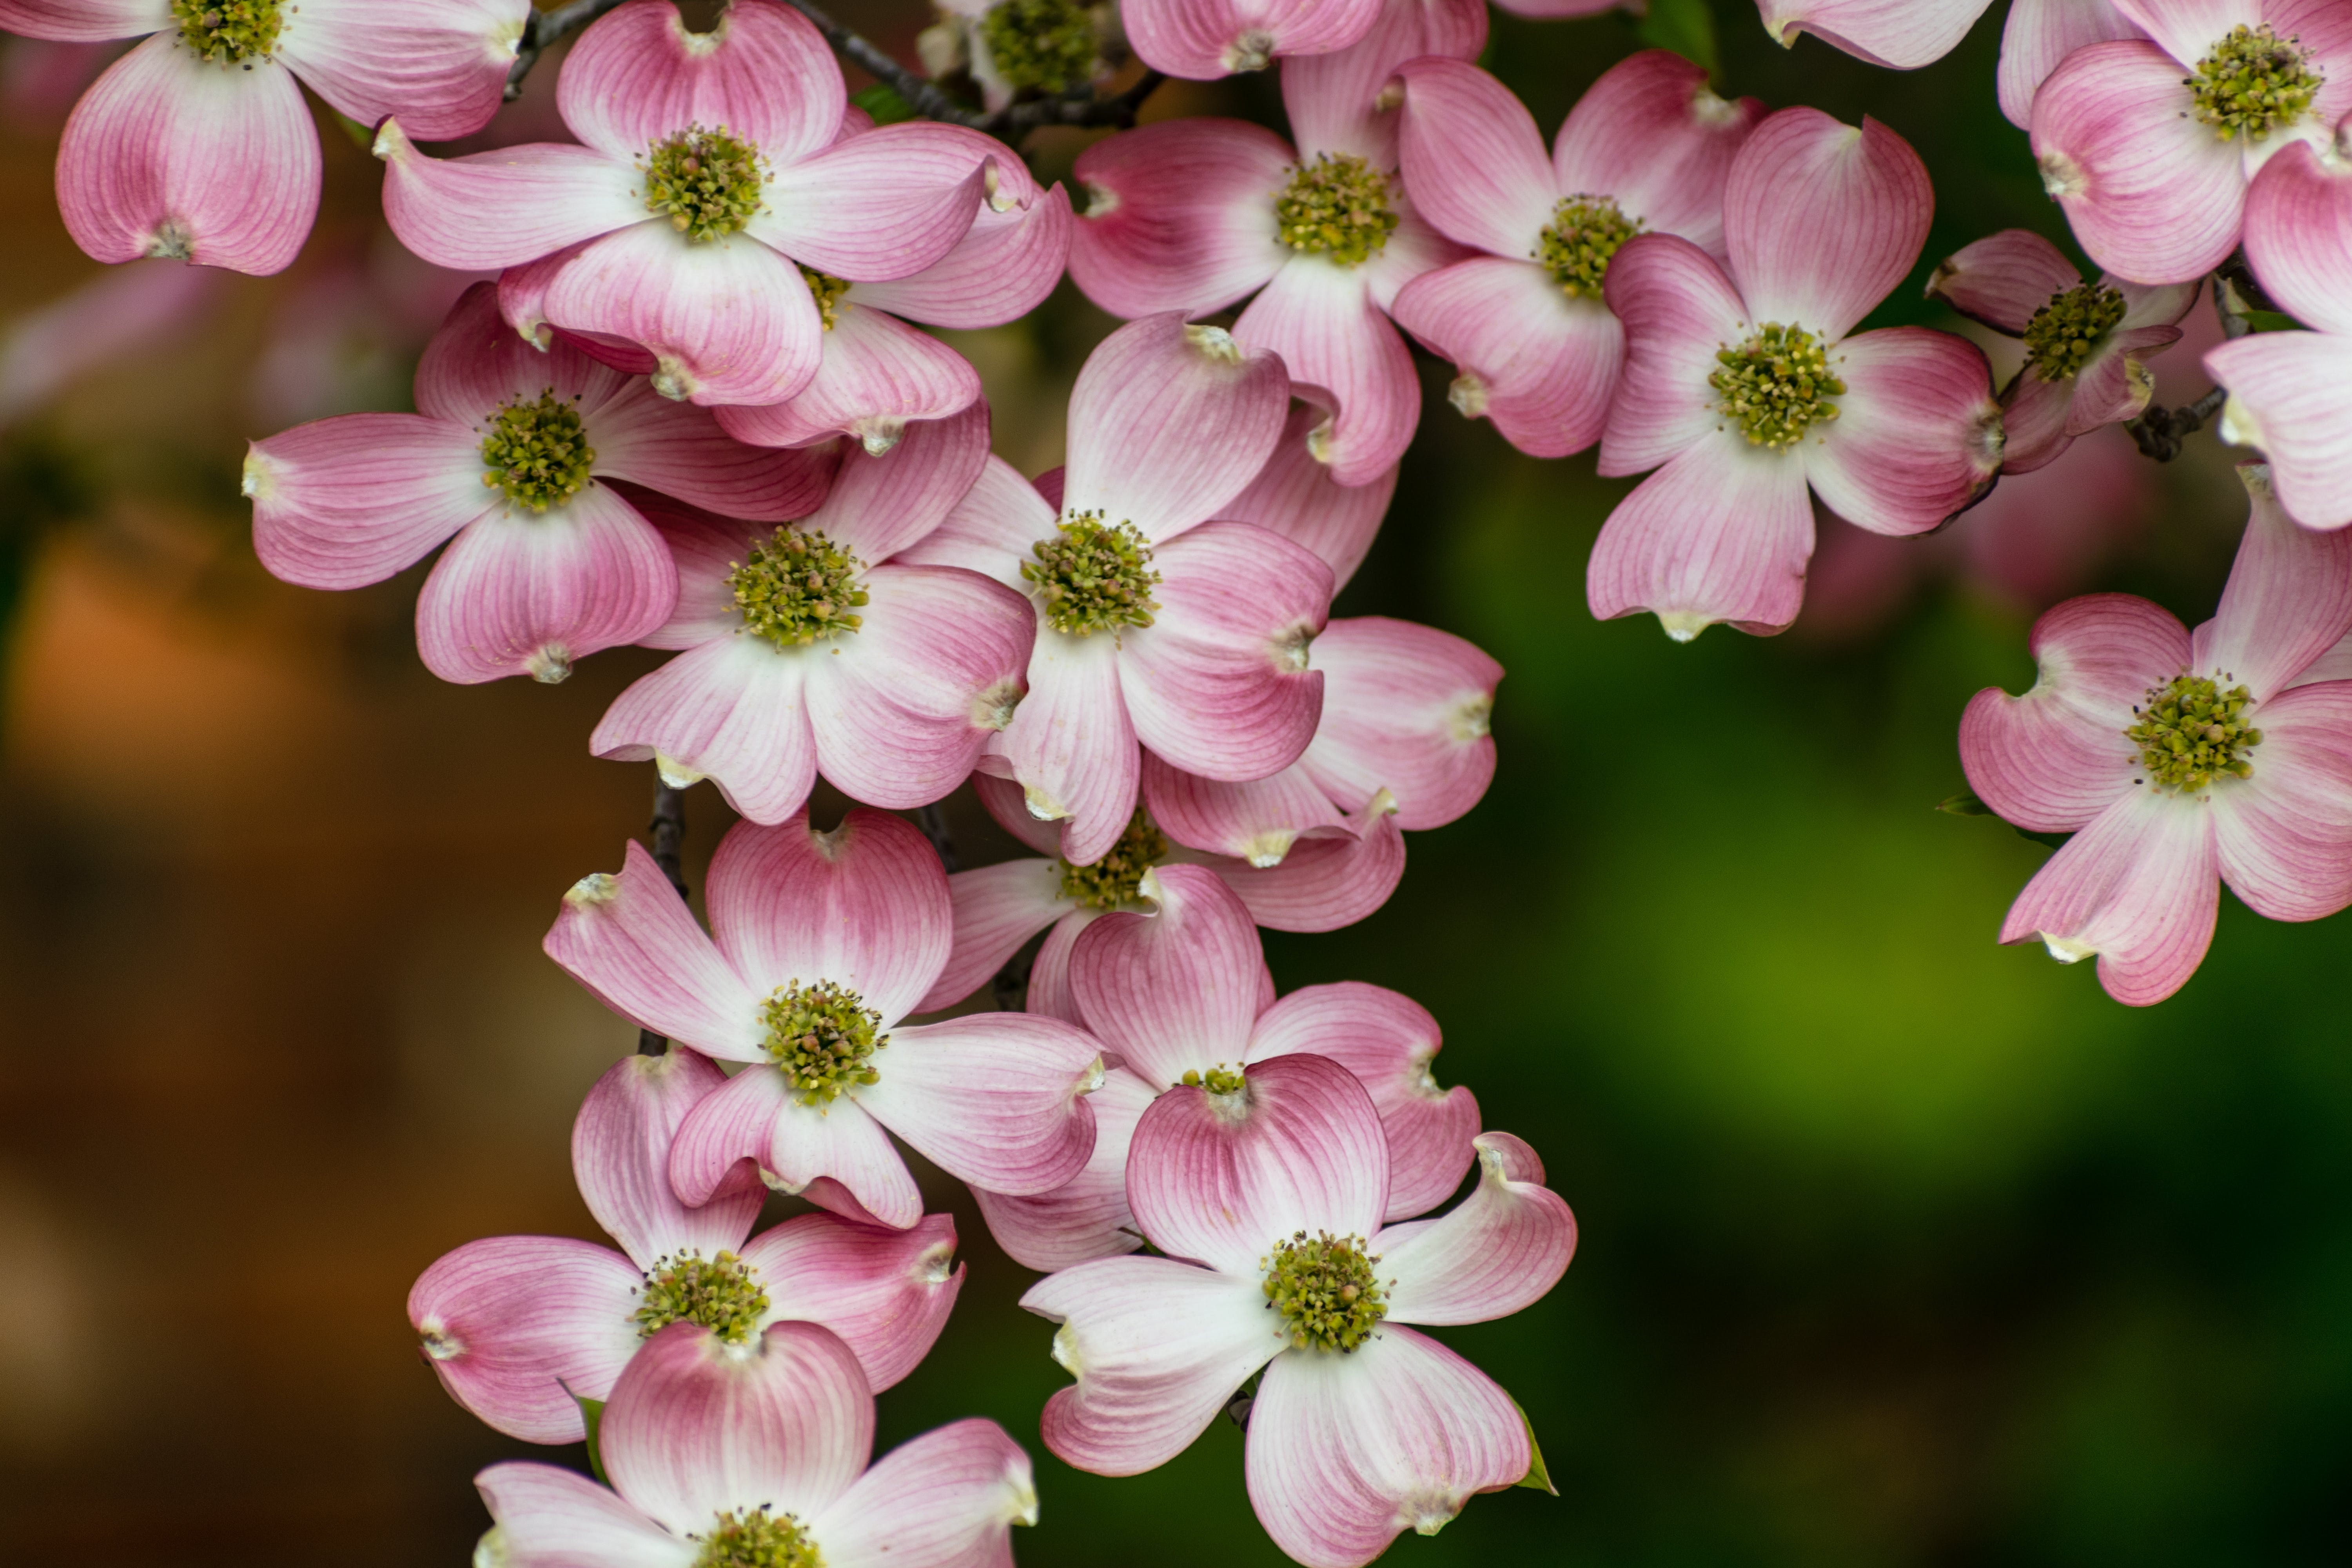 Free stock photo of trees, spring, flower, blossoms